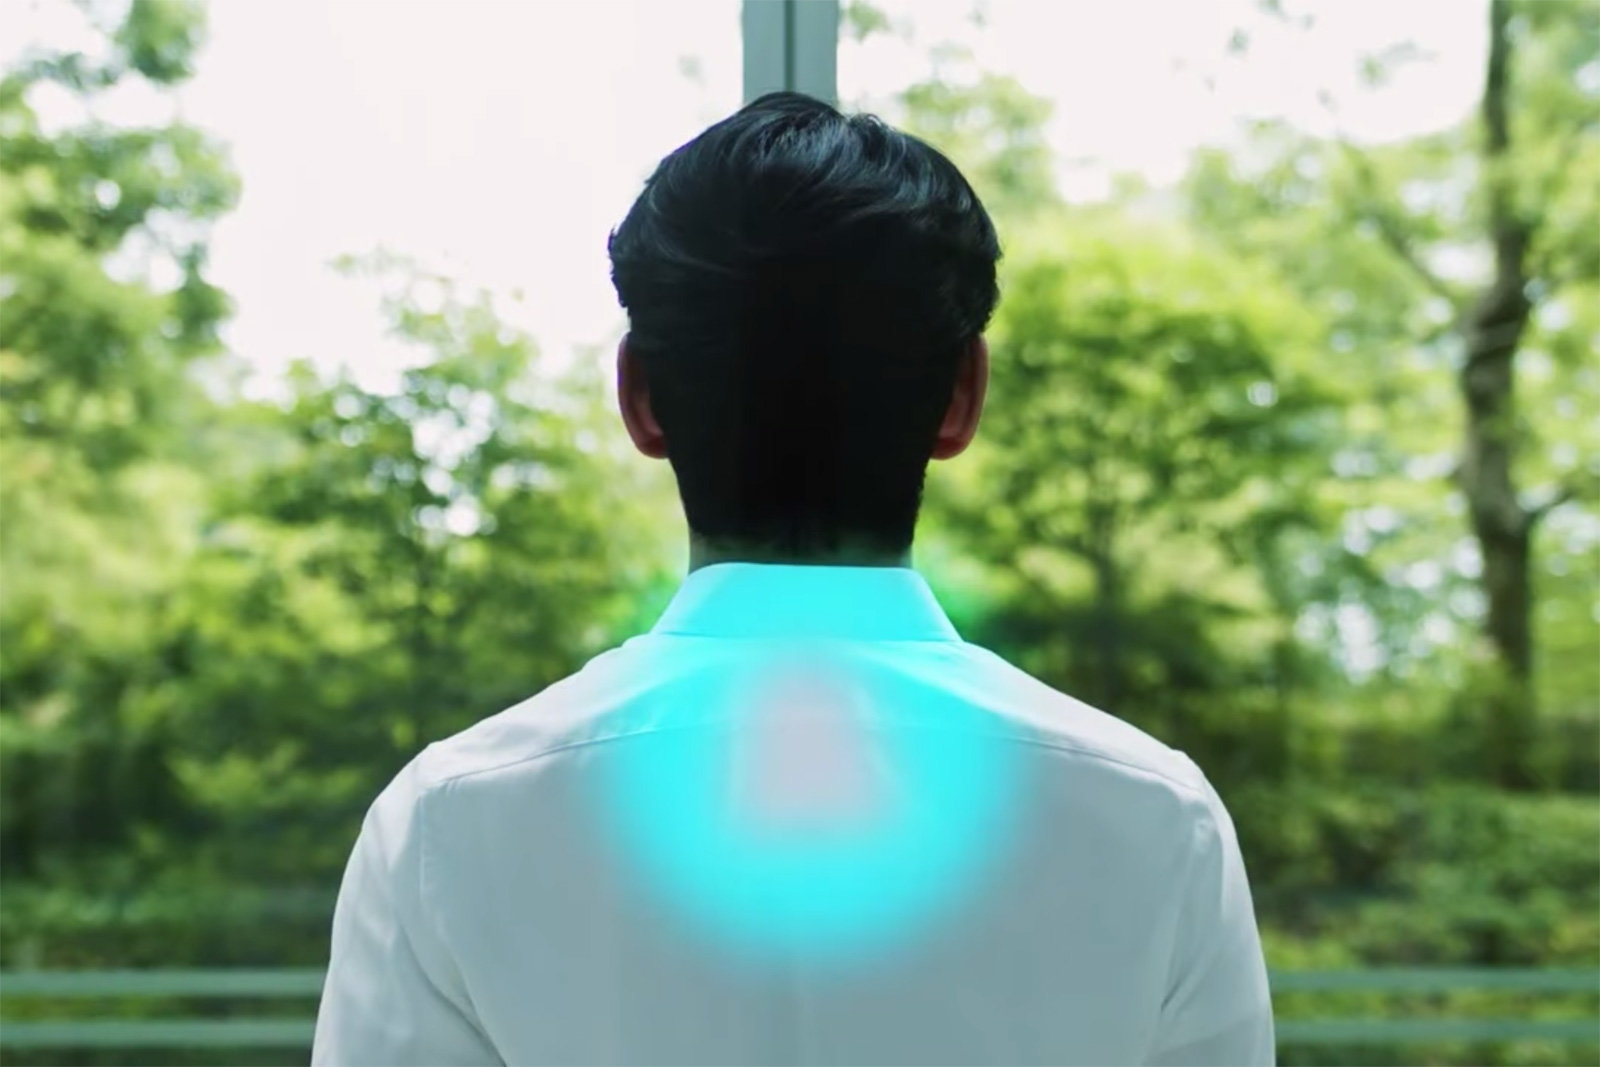 Sony is crowdfunding a wearable air conditioner | DeviceDaily.com